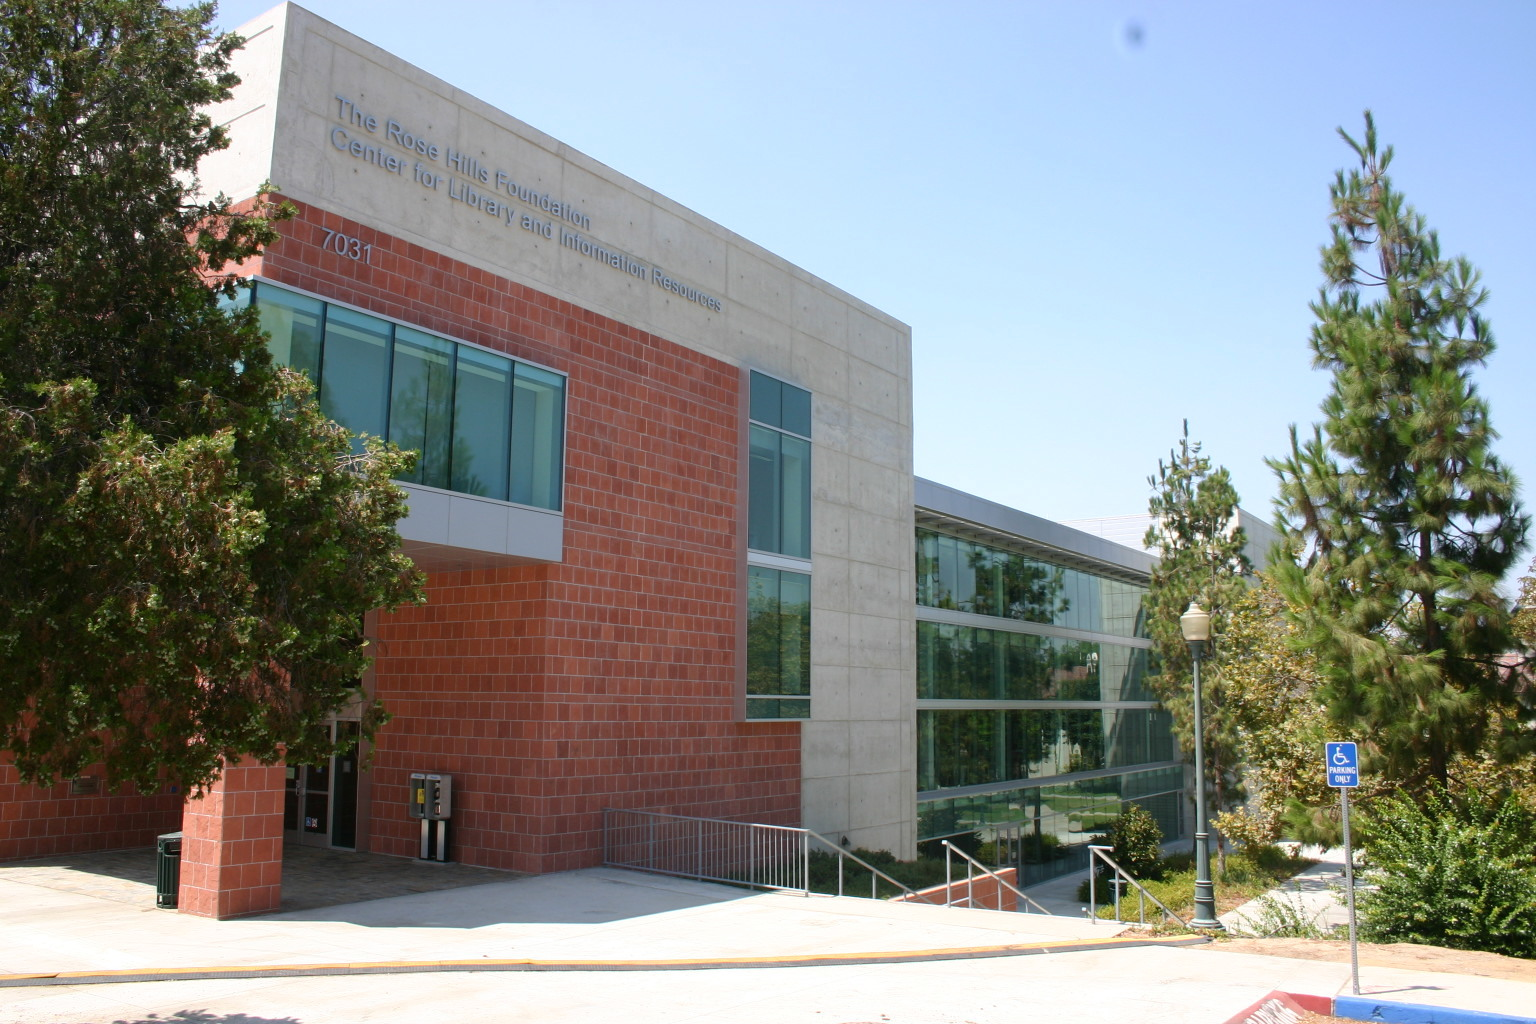 Rose Hills Foundation Center for Library & Information Resources